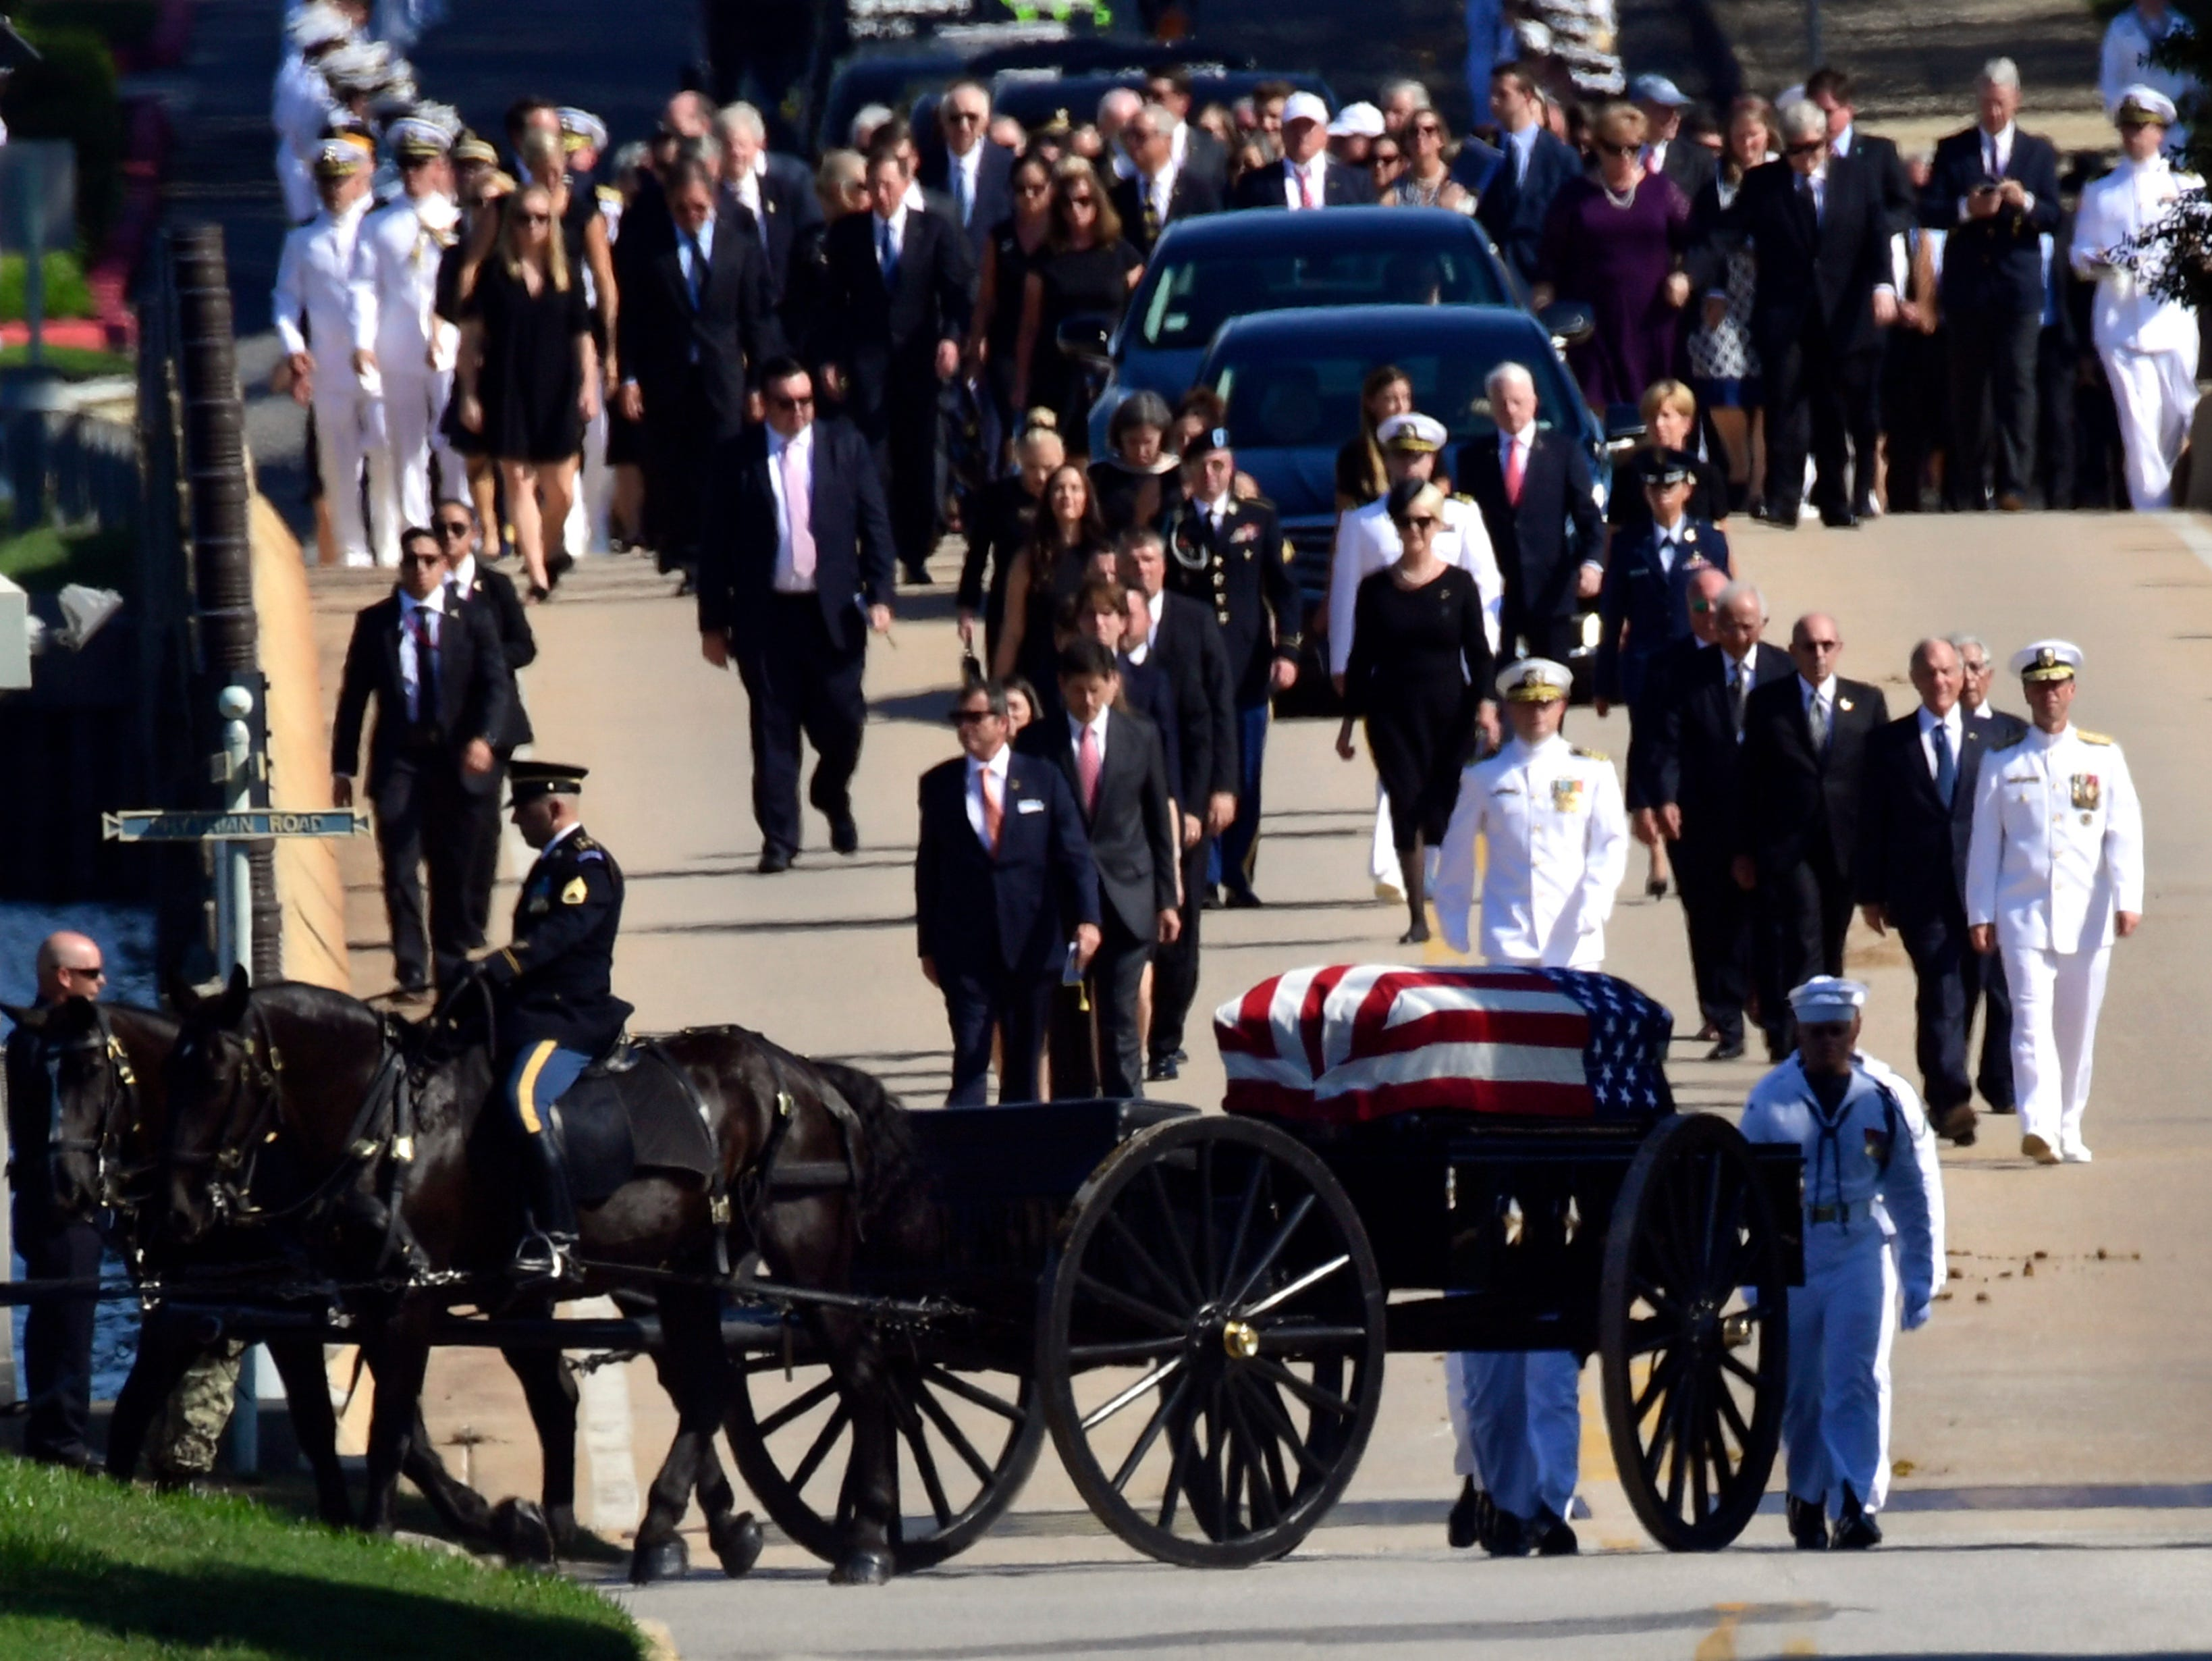 Family members, including Cindy McCain (back center) follow a horse-drawn caisson that carries the casket of Sen. John McCain as it proceeds to the United States Naval Academy cemetery in Annapolis, Maryland, Sept. 2, 2018, for burial. McCain died Aug. 25 from brain cancer at age 81.